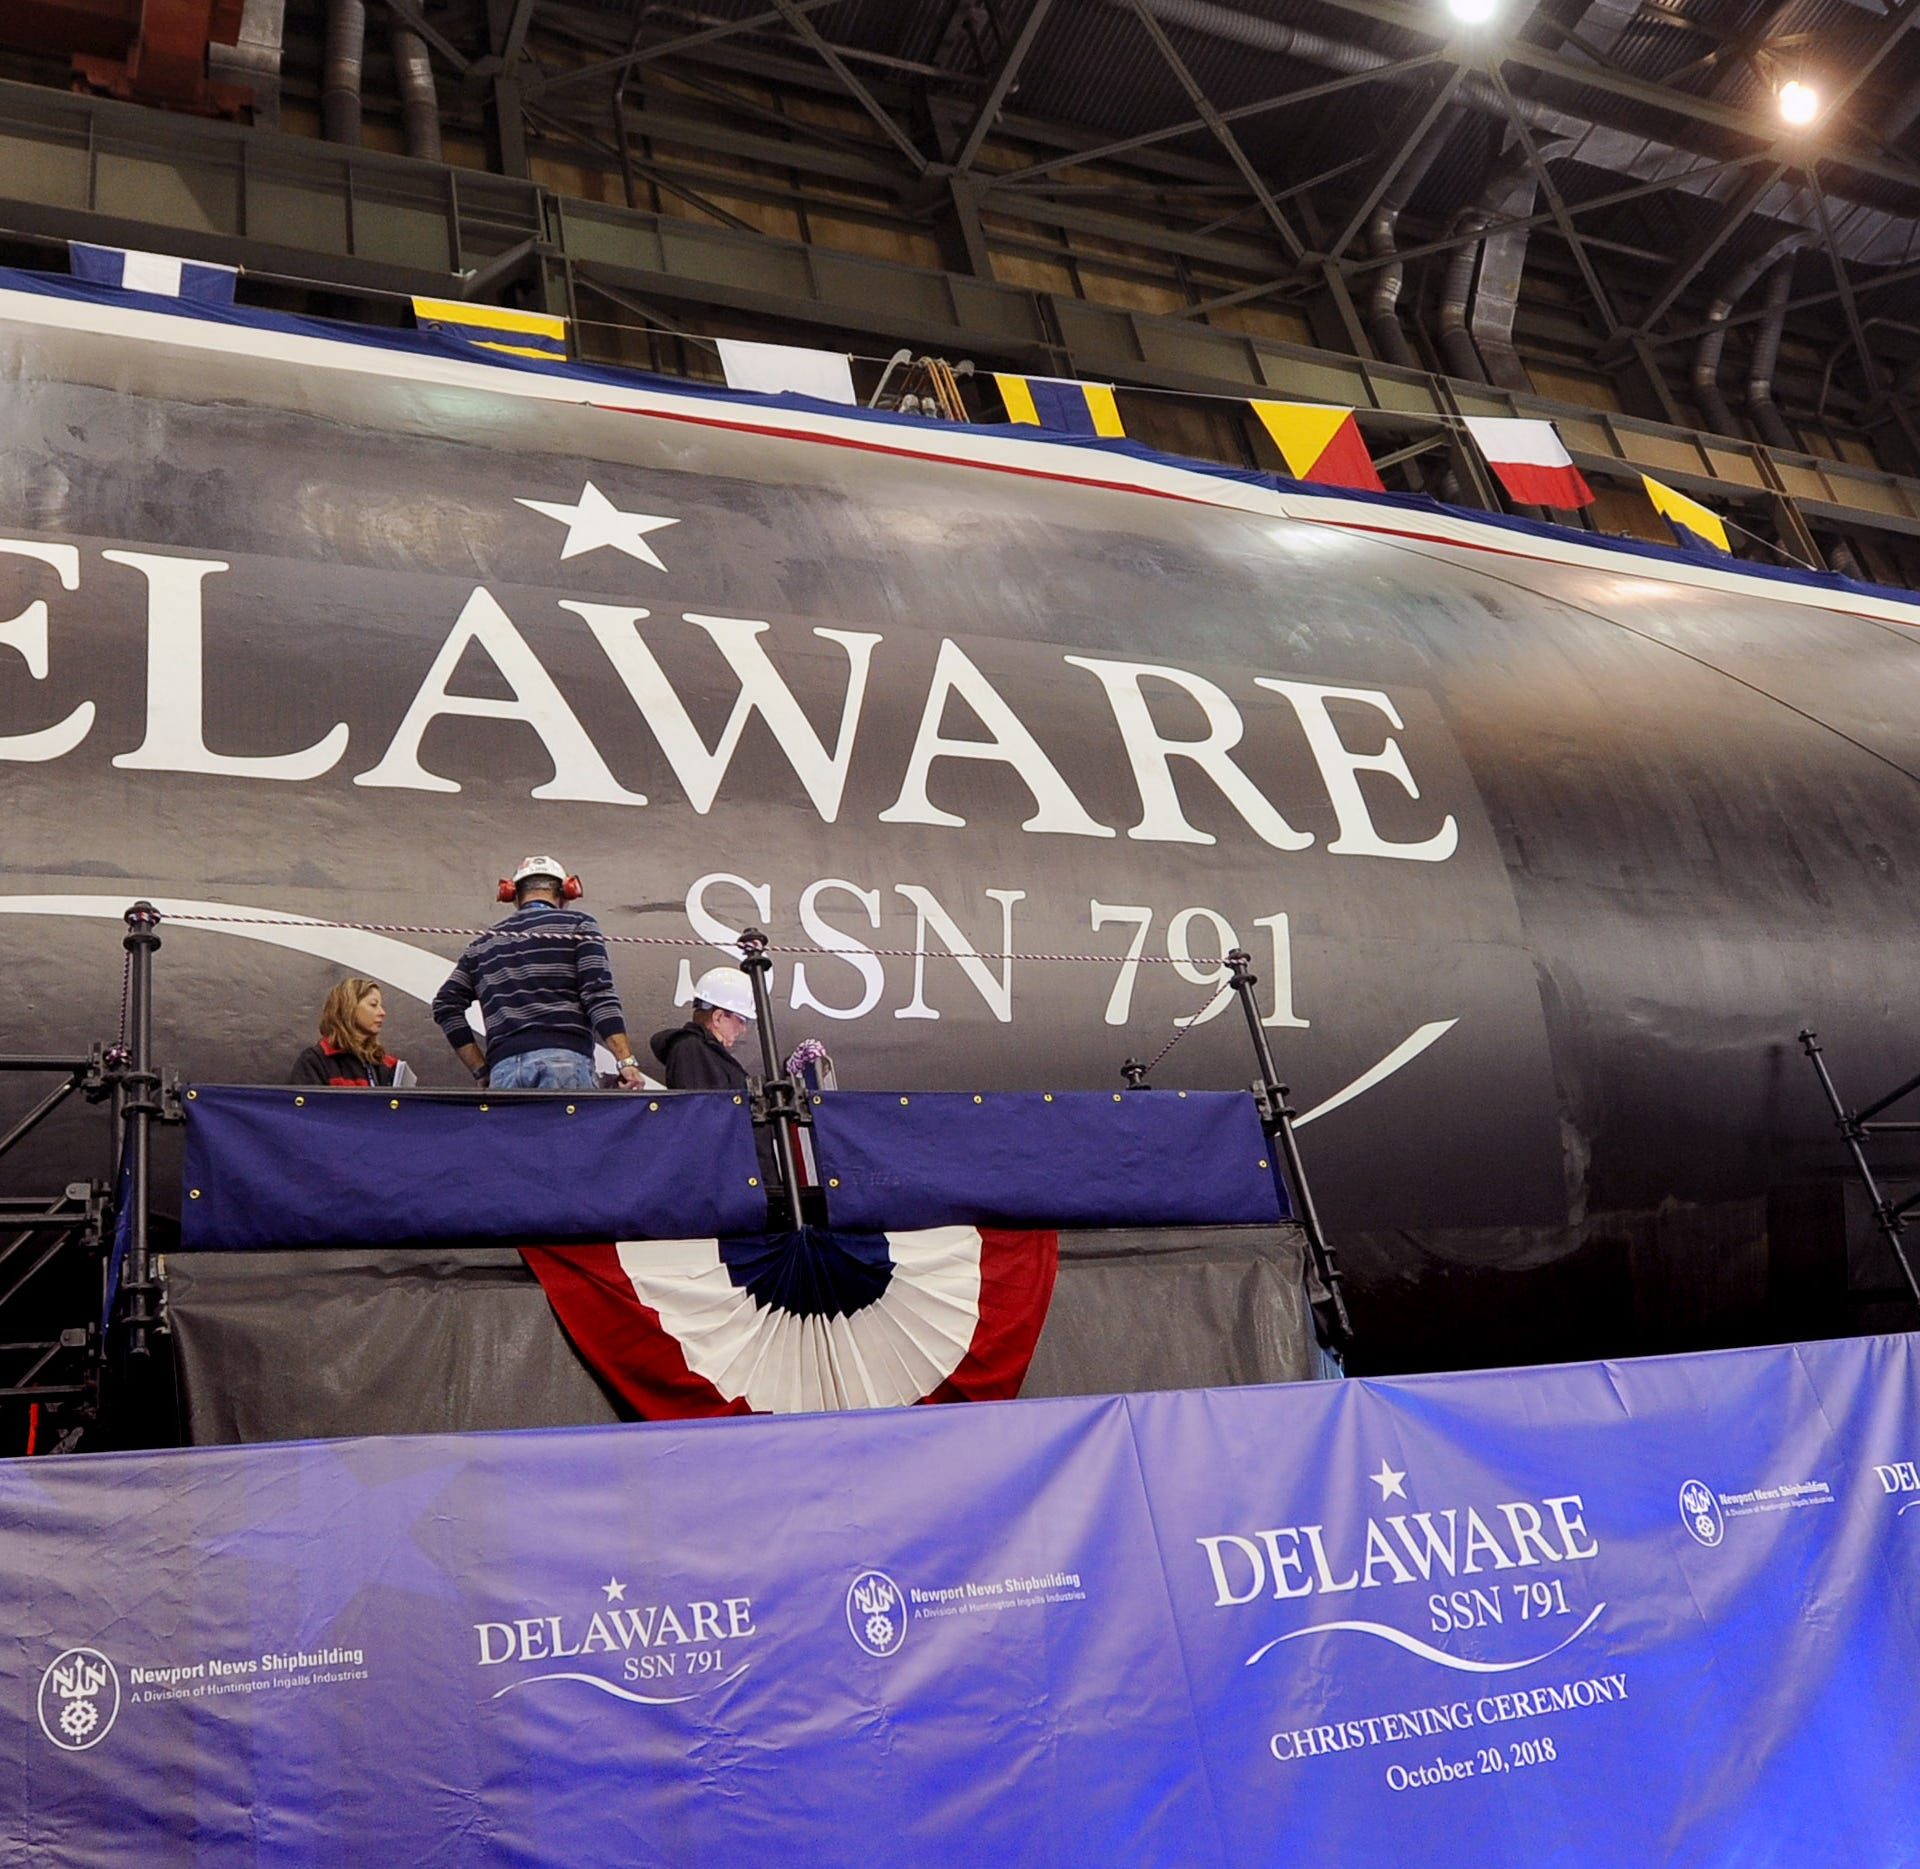 Newport News Shipbuilding crews prepare for the christening of the Virginia-class atomic submarine USS Delaware (SSN-791). It will be about a year before the submarine is fully commissioned.